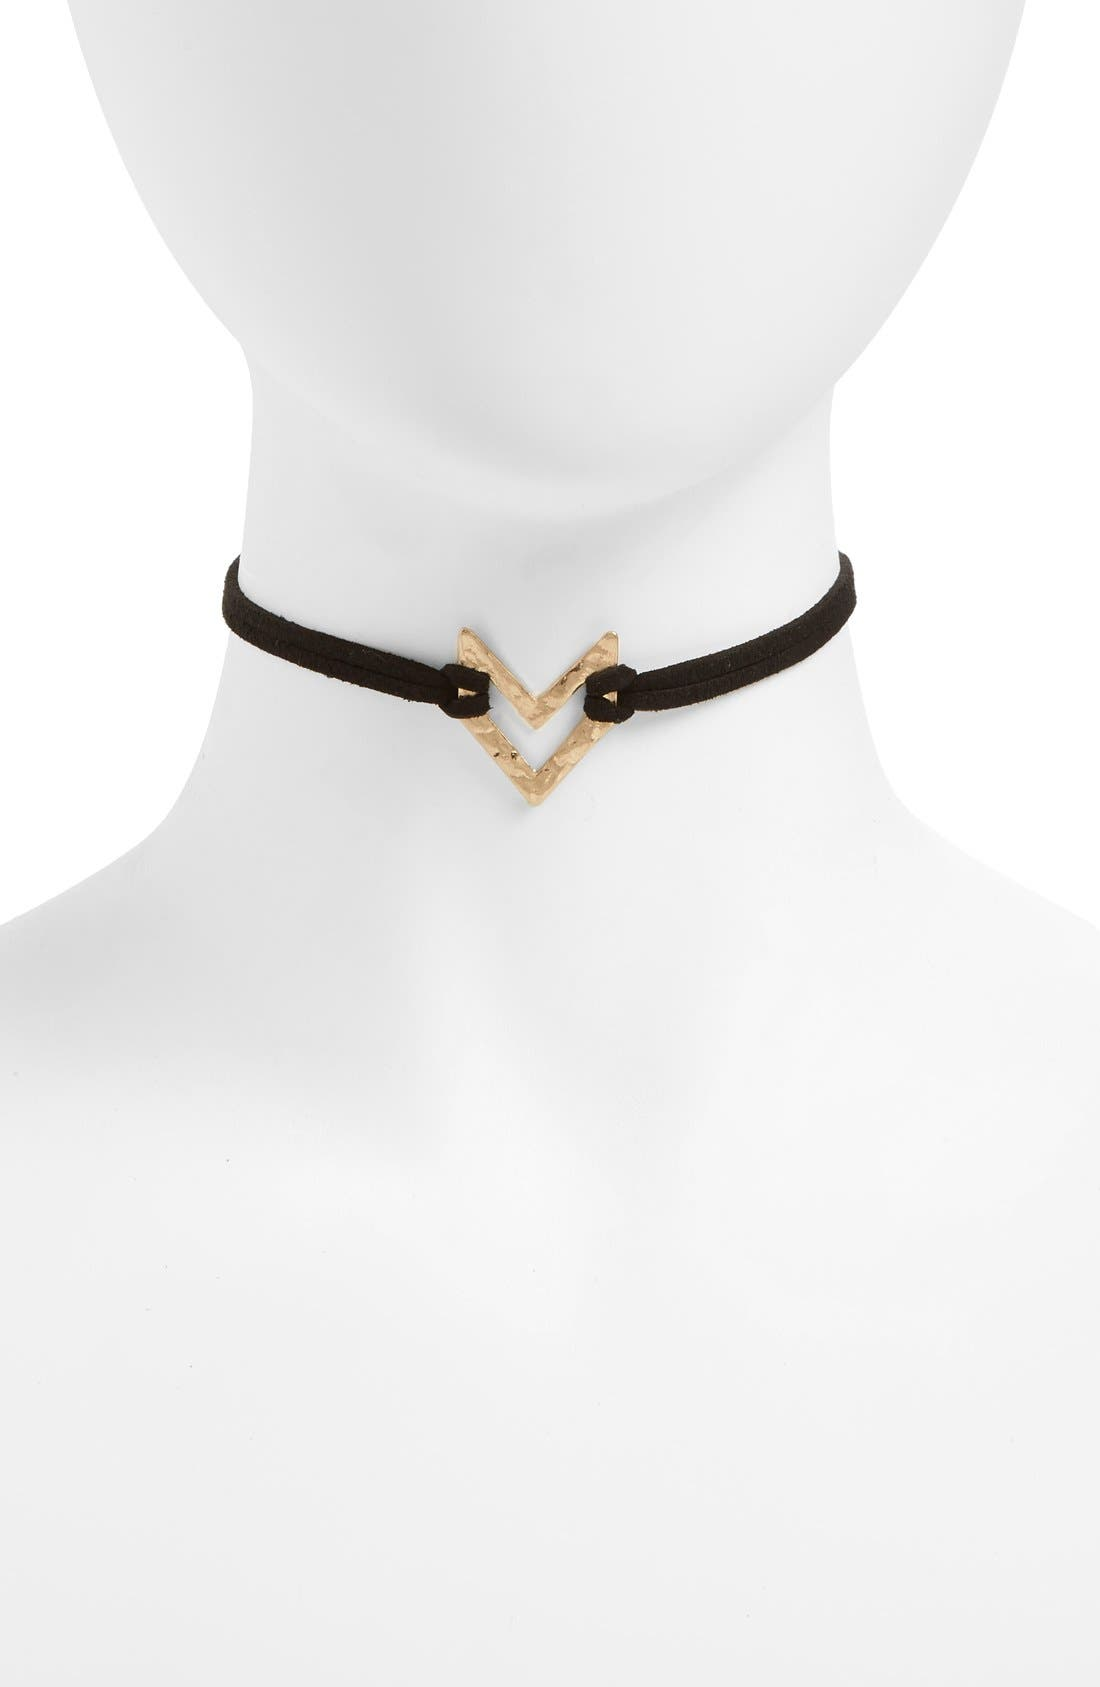 CANVAS JEWELRY Chevron Leather Choker, Main, color, 001